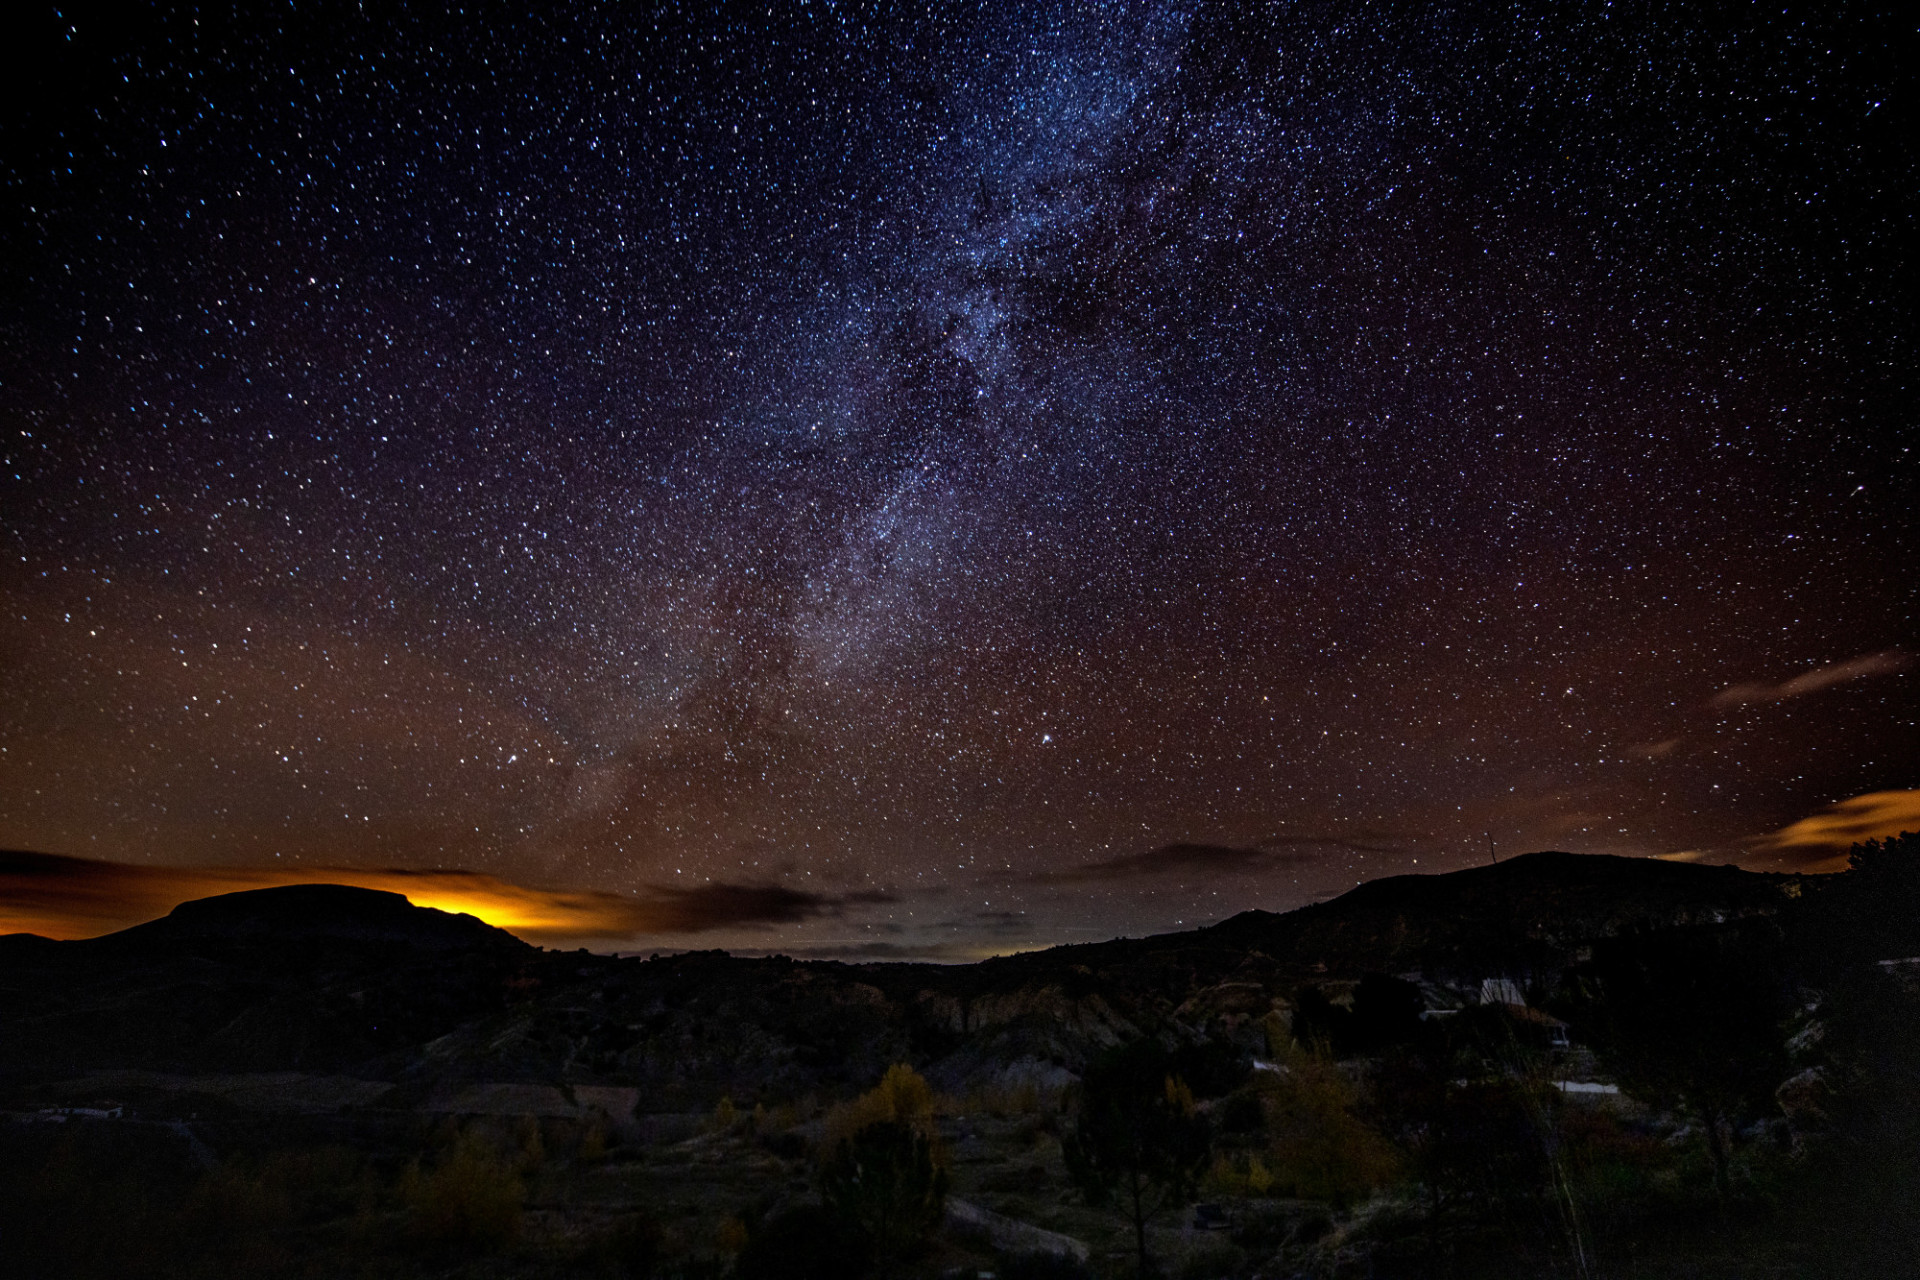 Milky Way at Night over Acequia del Toril landscape